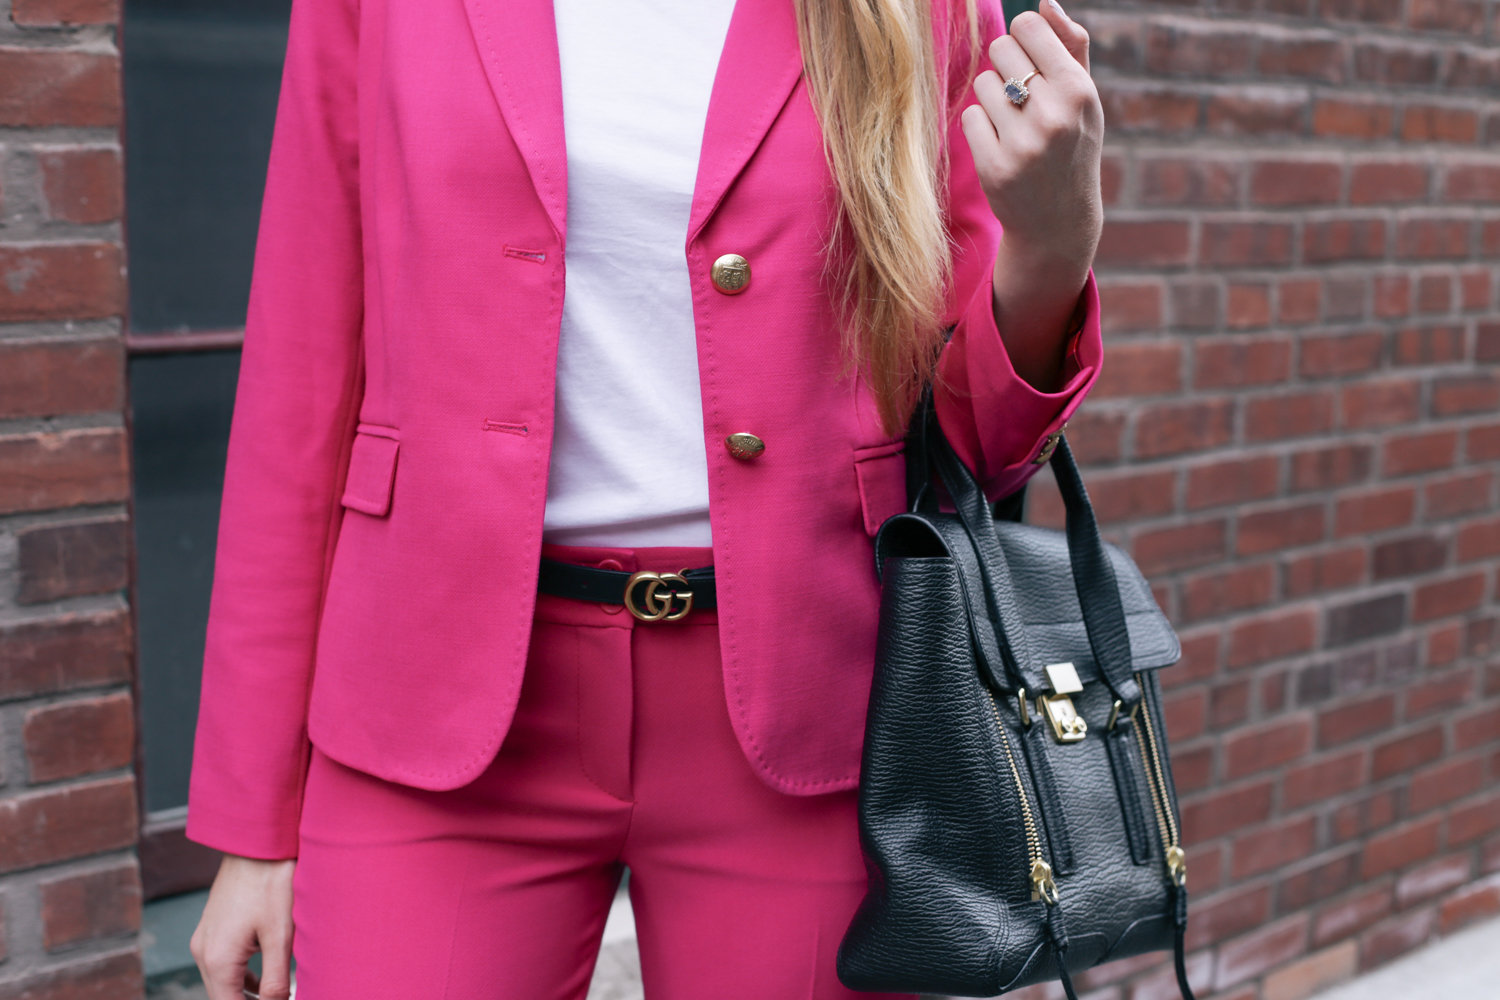 talbots pink suit (6 of 10)